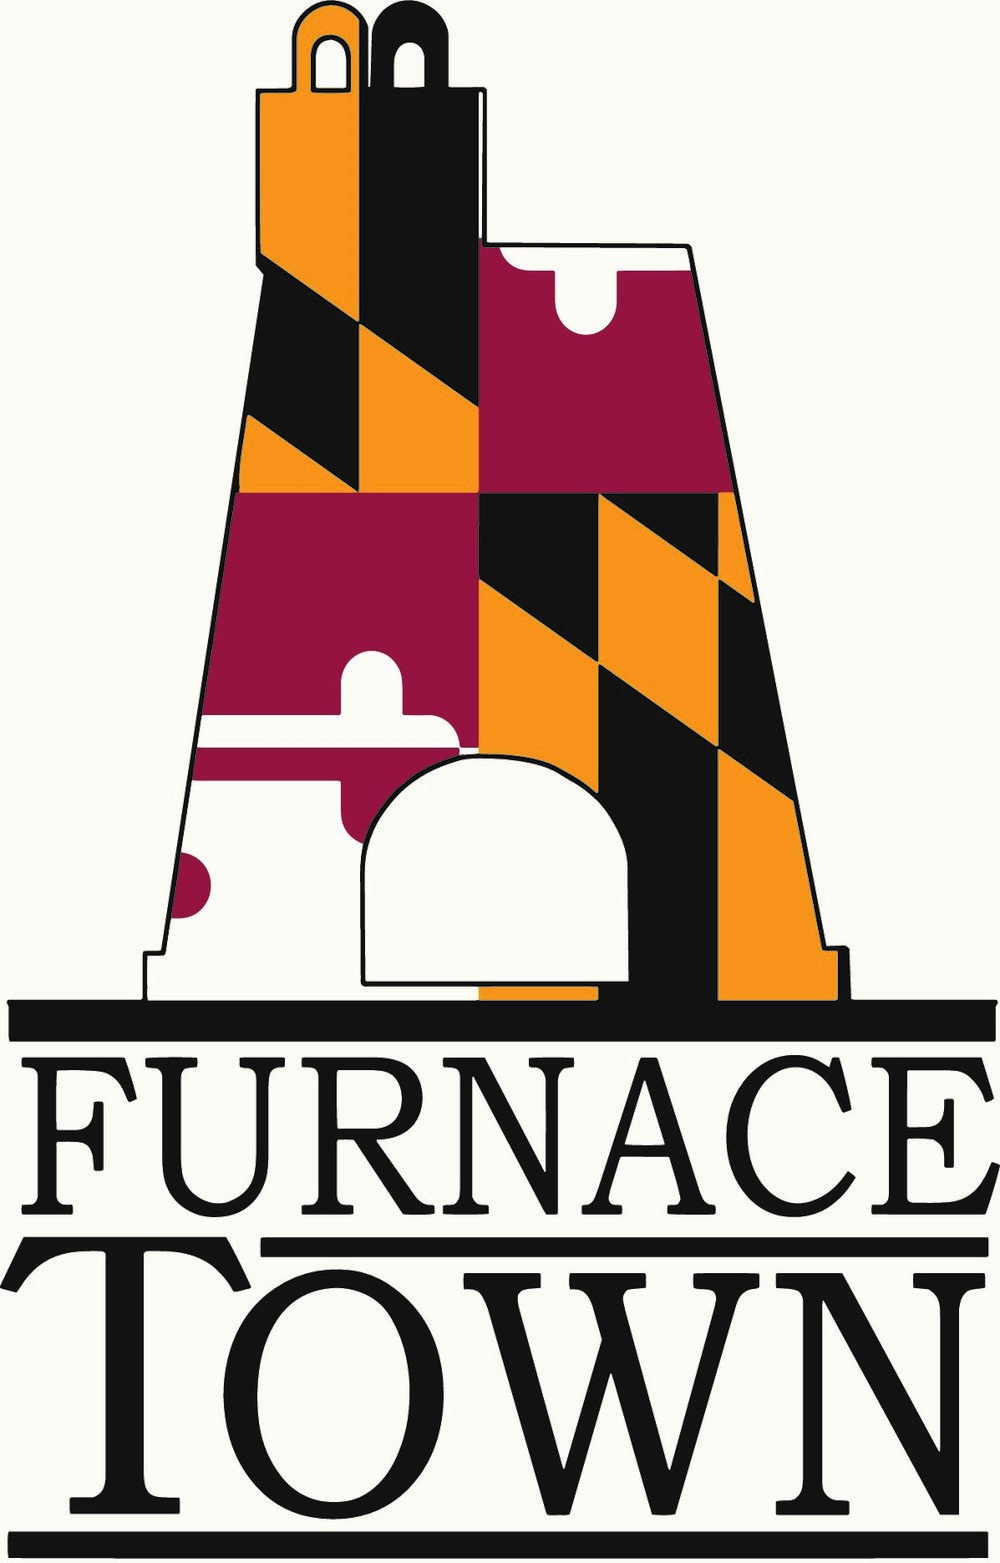 Furnace Town Logo MD Flag.jpg